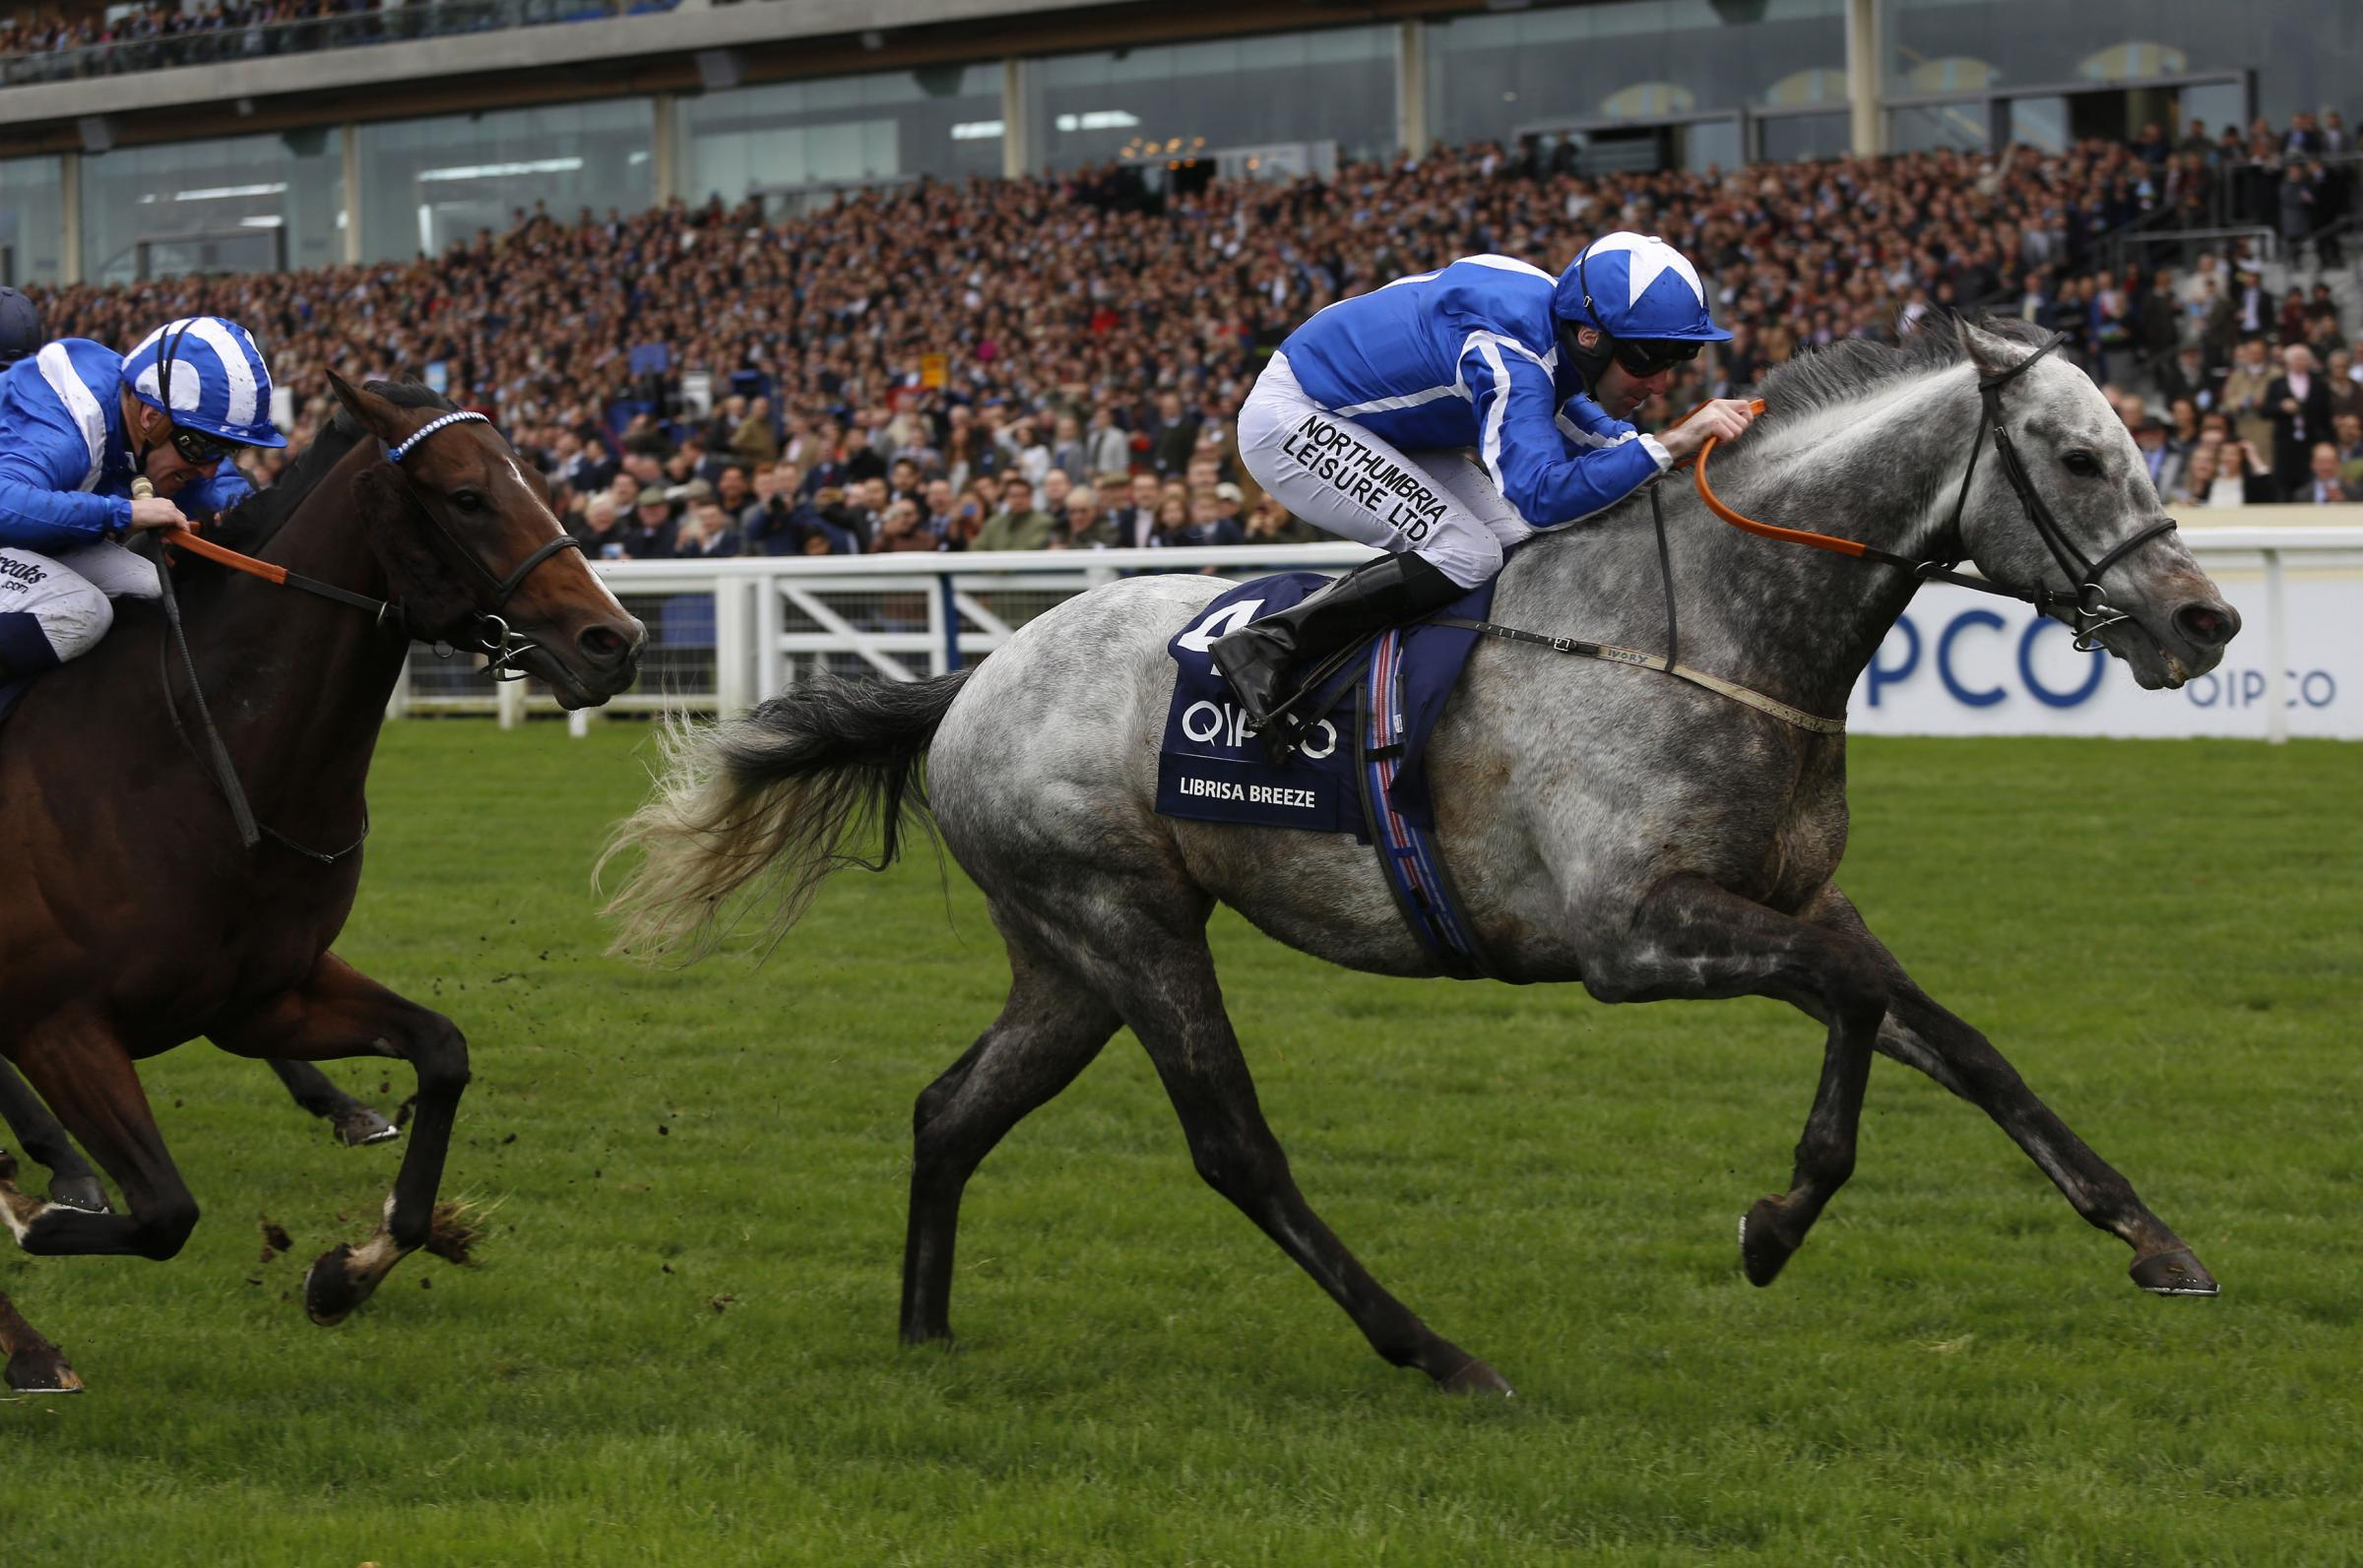 Robert Winston rides Librisa Breeze to victory in the QIPCO British Champions Sprint Stakes at Ascot – Picture: Julian Herbert/PA Wire